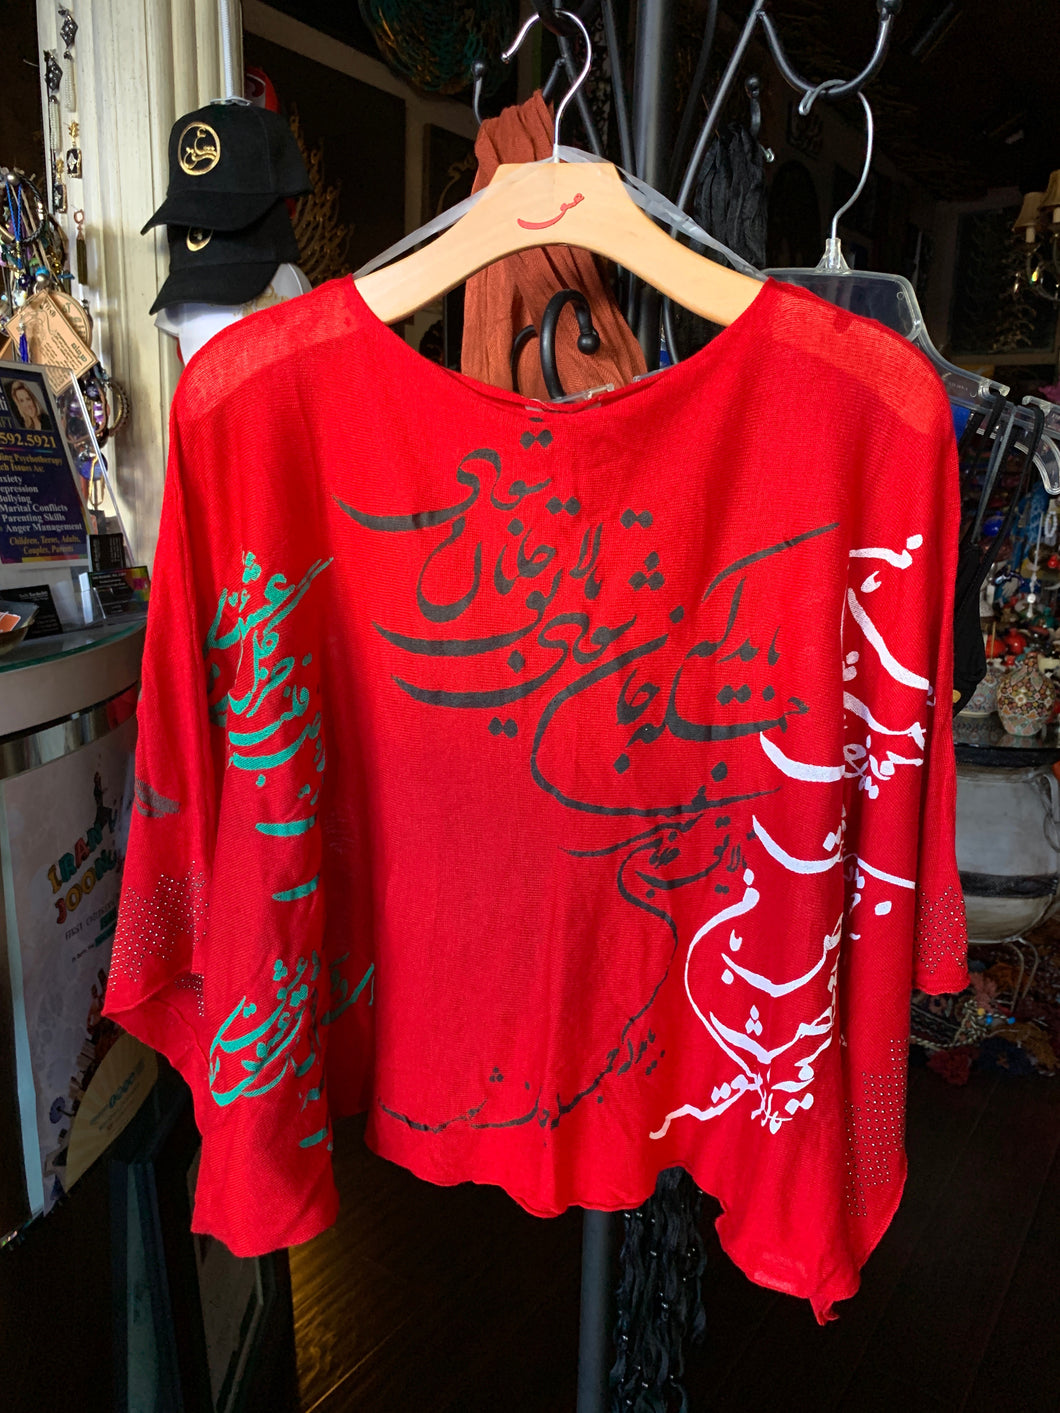 Women Blouse with Printed Calligraphy of a Poem in Farsi- Color: Red